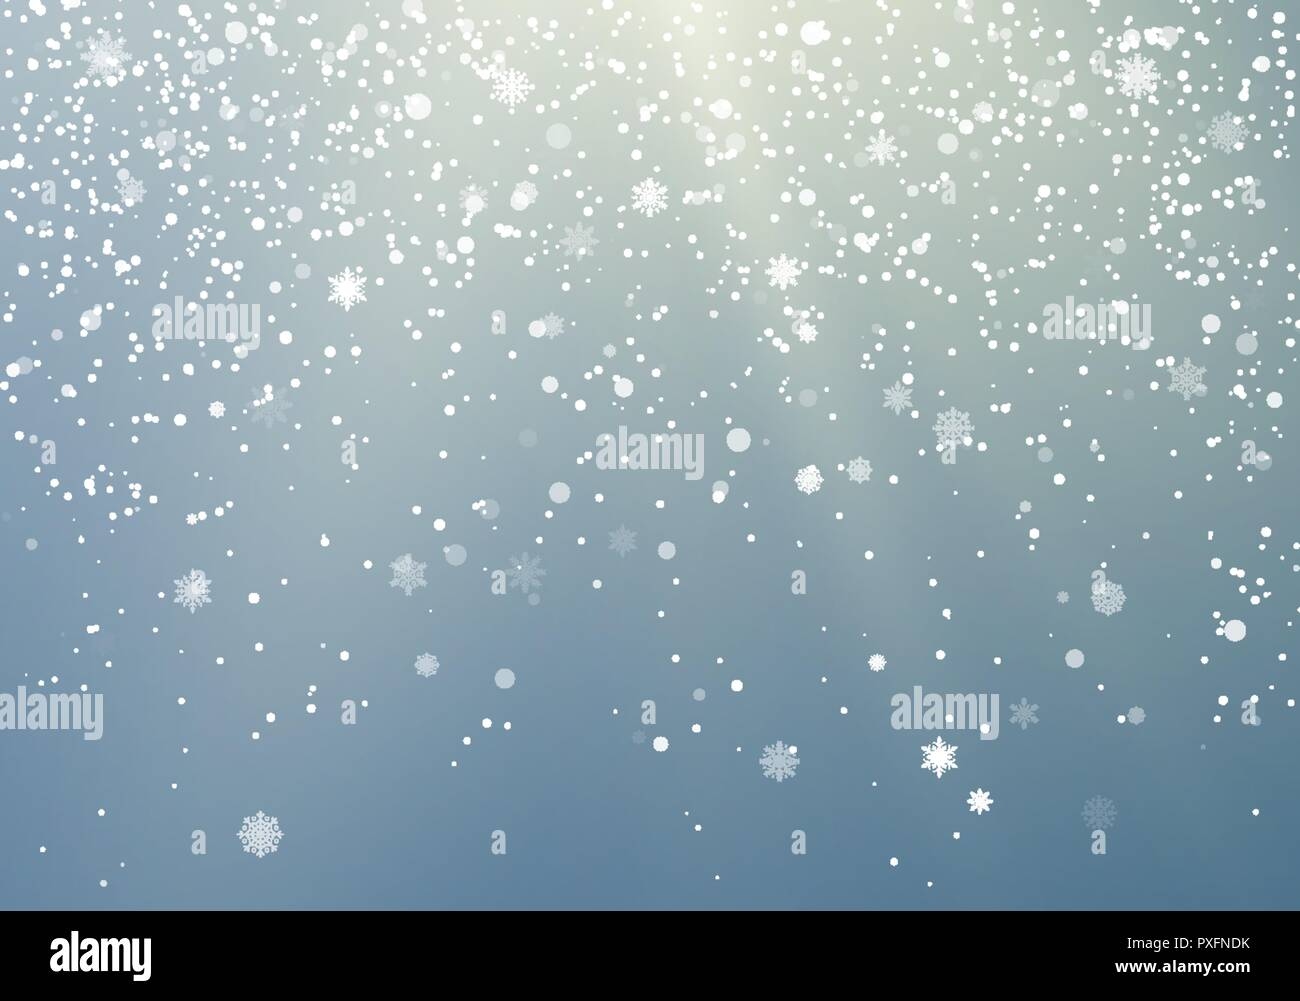 falling snowflakes transparent background winter pattern with crystallic snowflakes christmas and new year background vector illustration